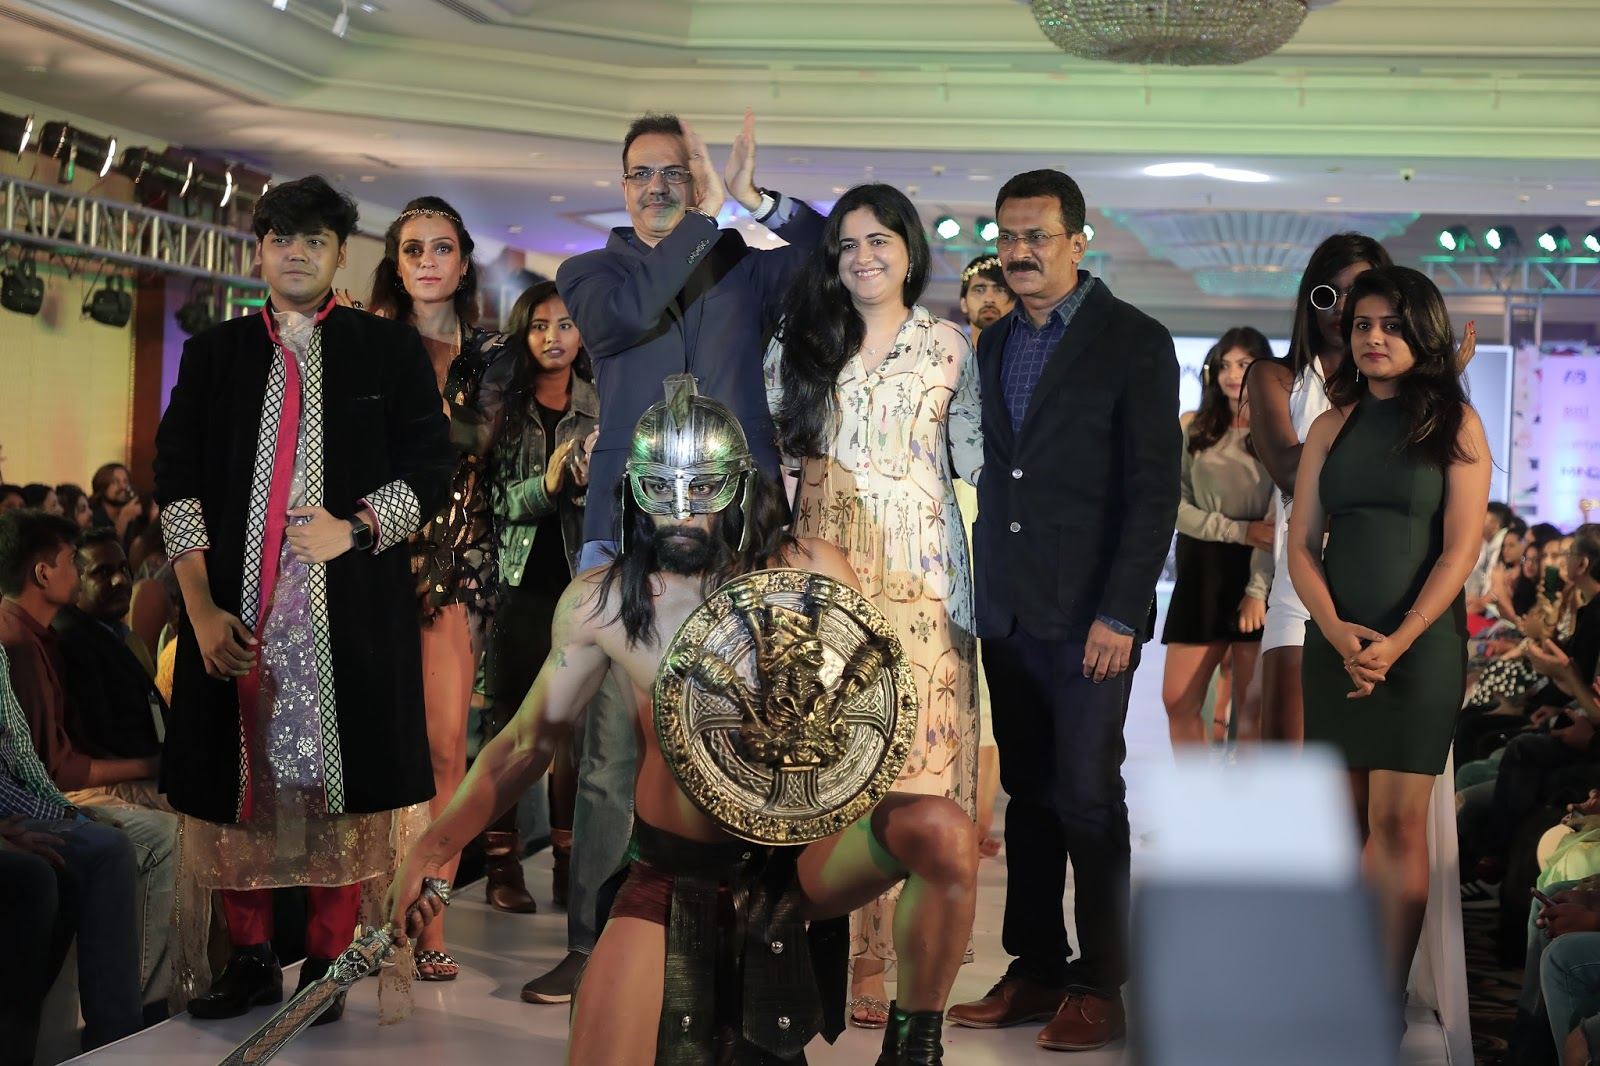 """93072ccac """"India Intimate Fashion Week had a fantastic season 1 and we were more than  excited to present season 2. Season 2 will be always be special  as fire  set by ..."""